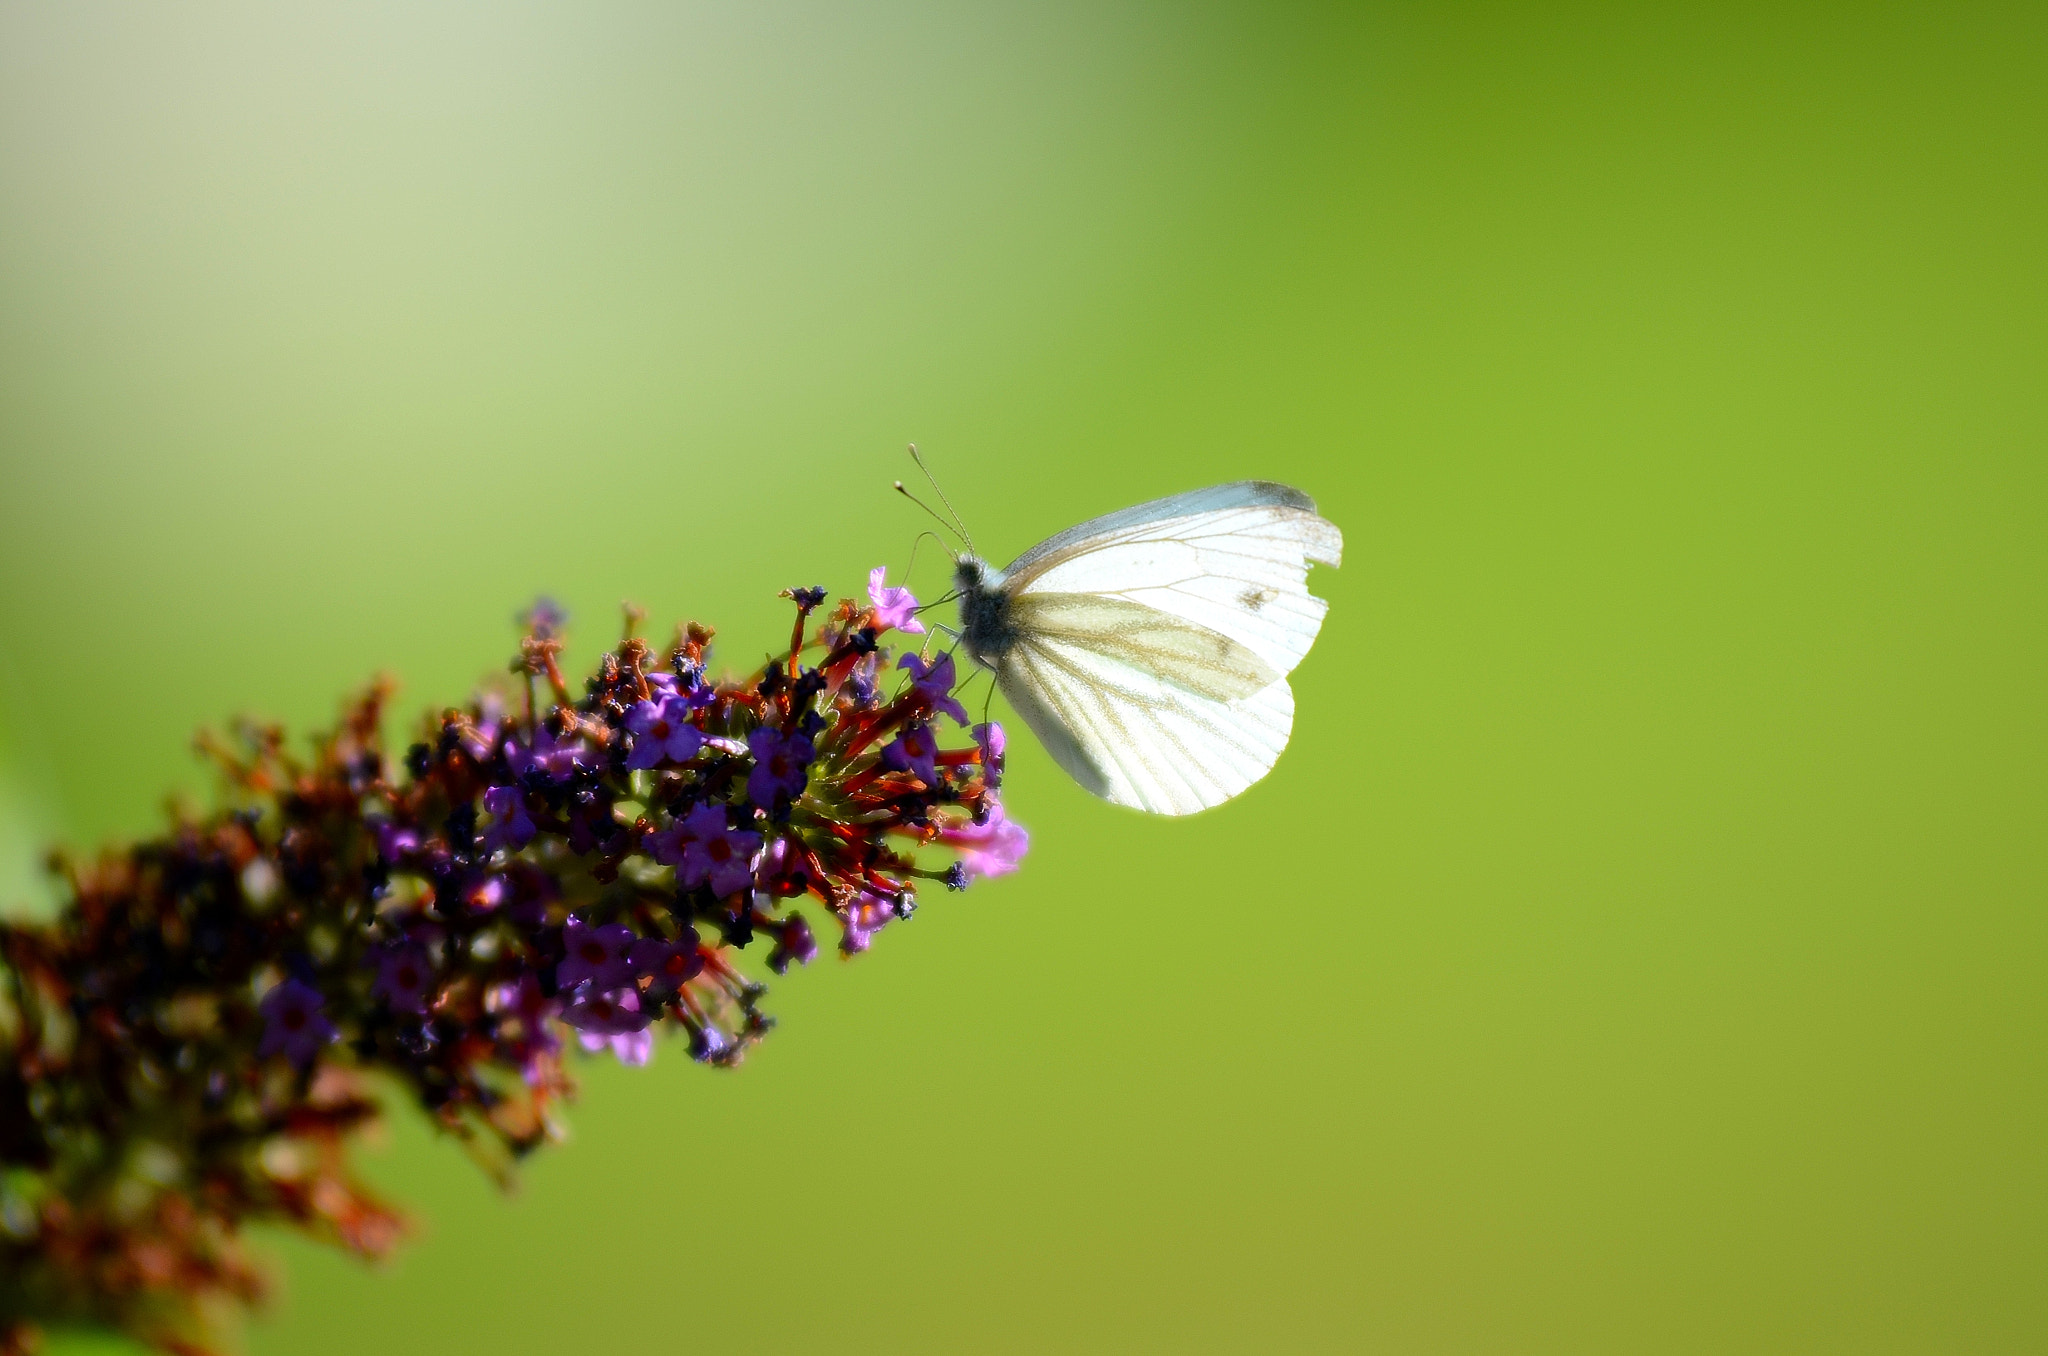 Photograph Schmetterling by Michael Bellenberg on 500px